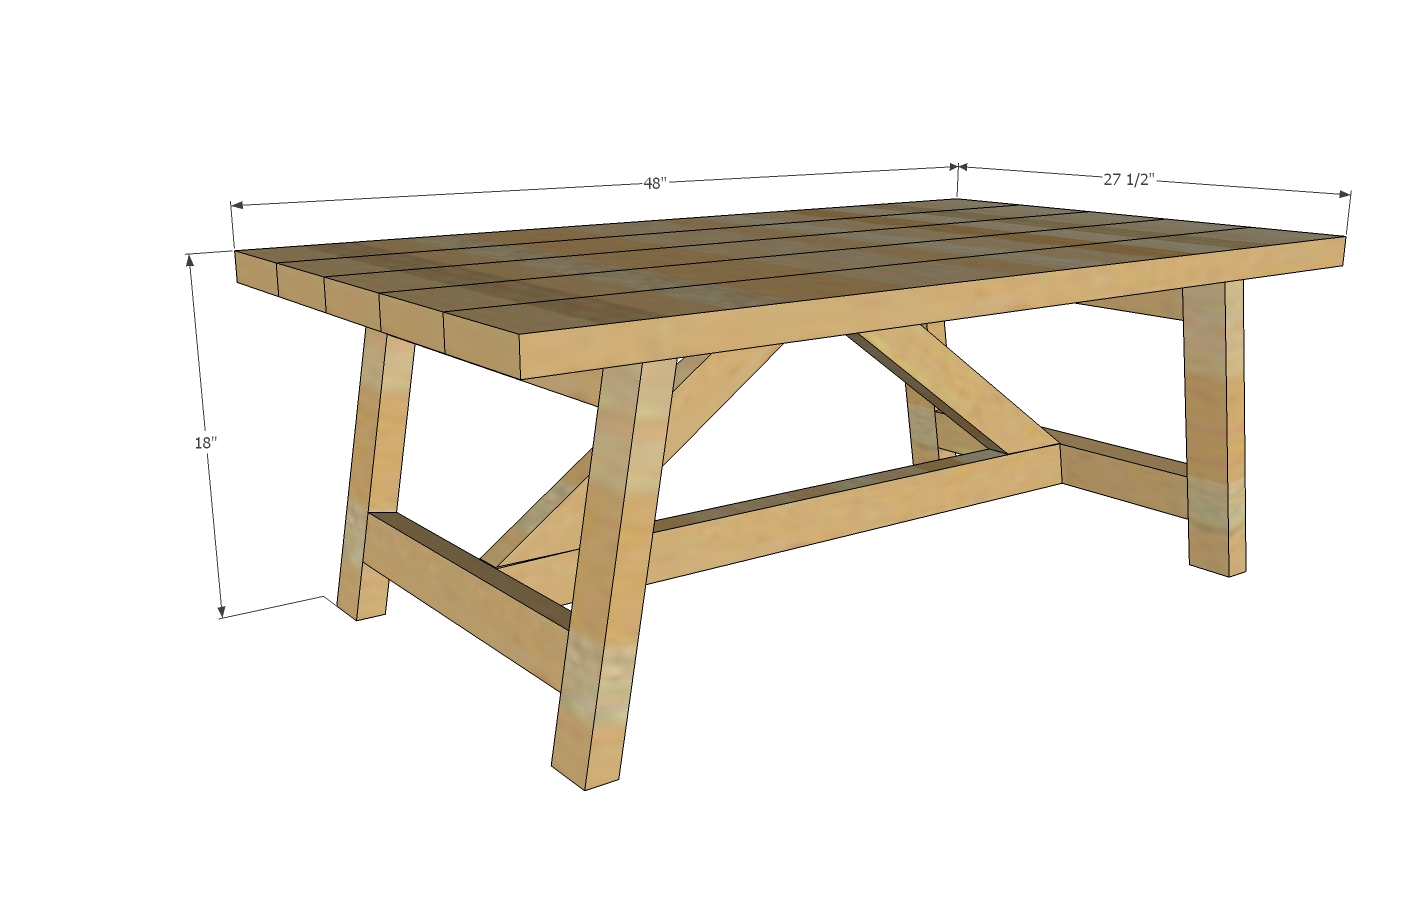 truss coffee table woodworking plans - WoodShop Plans